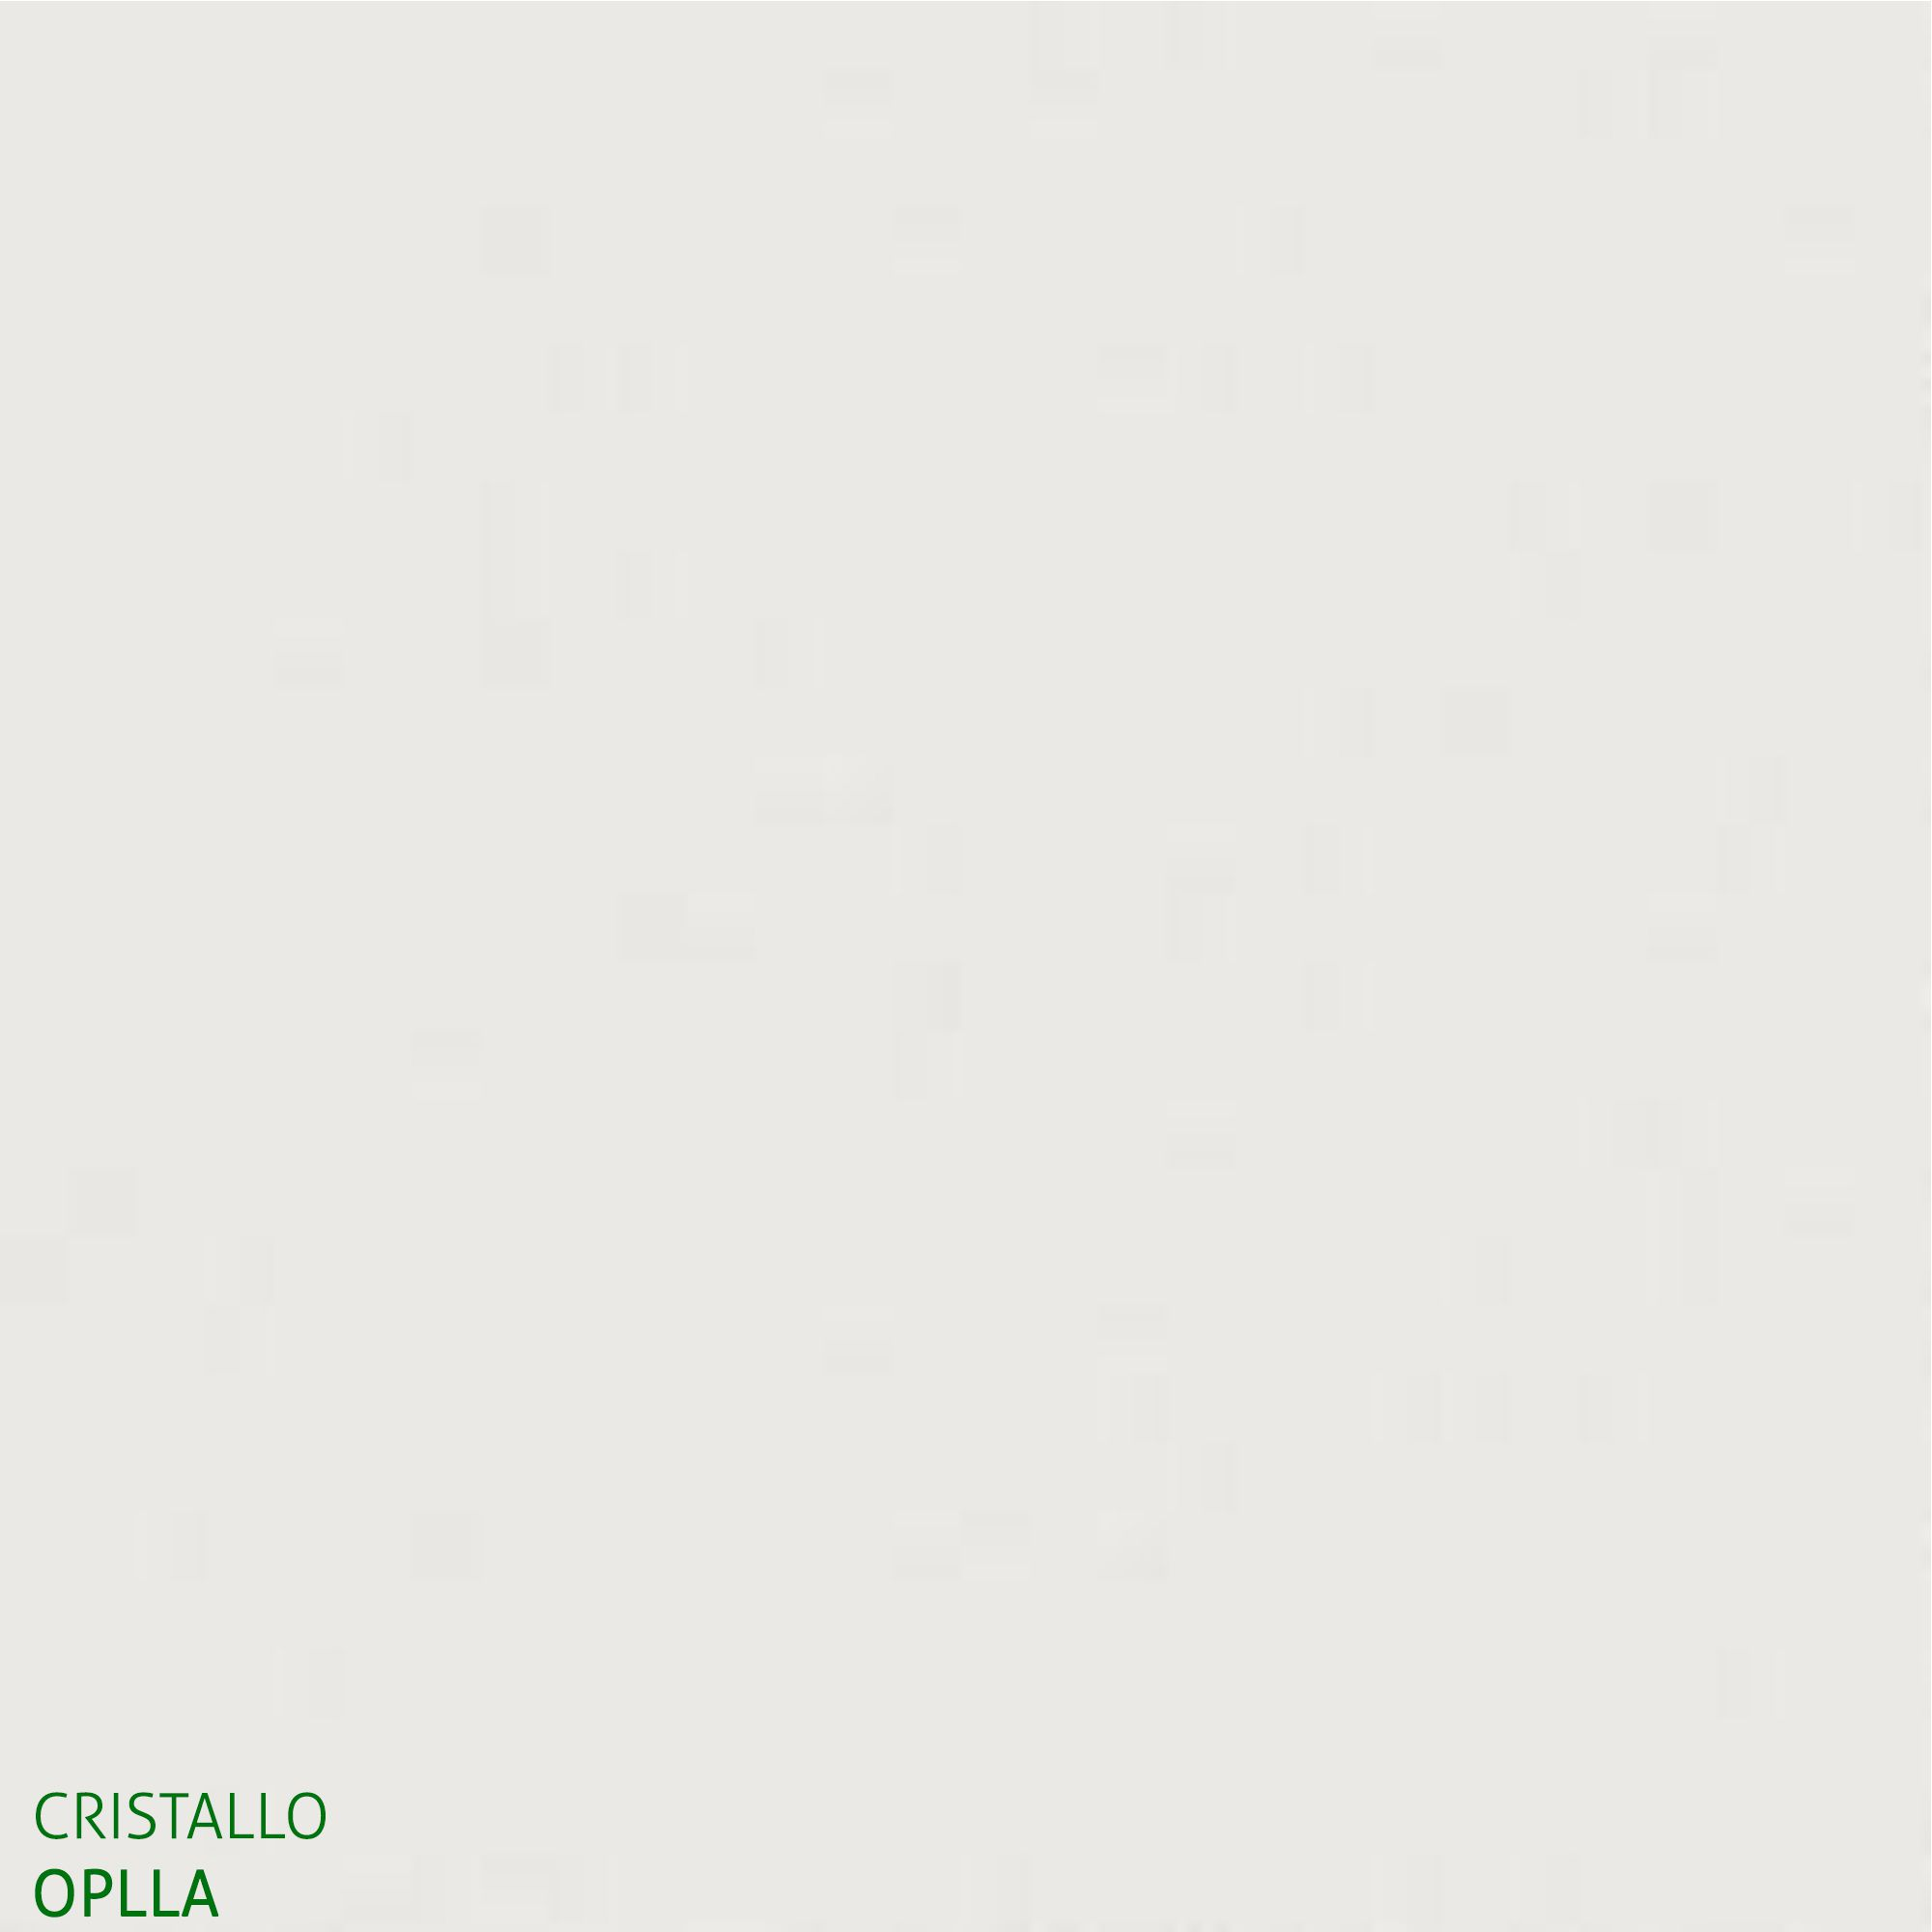 MDF Cristallo Opala 2.750 x 1.840 mm Duratex